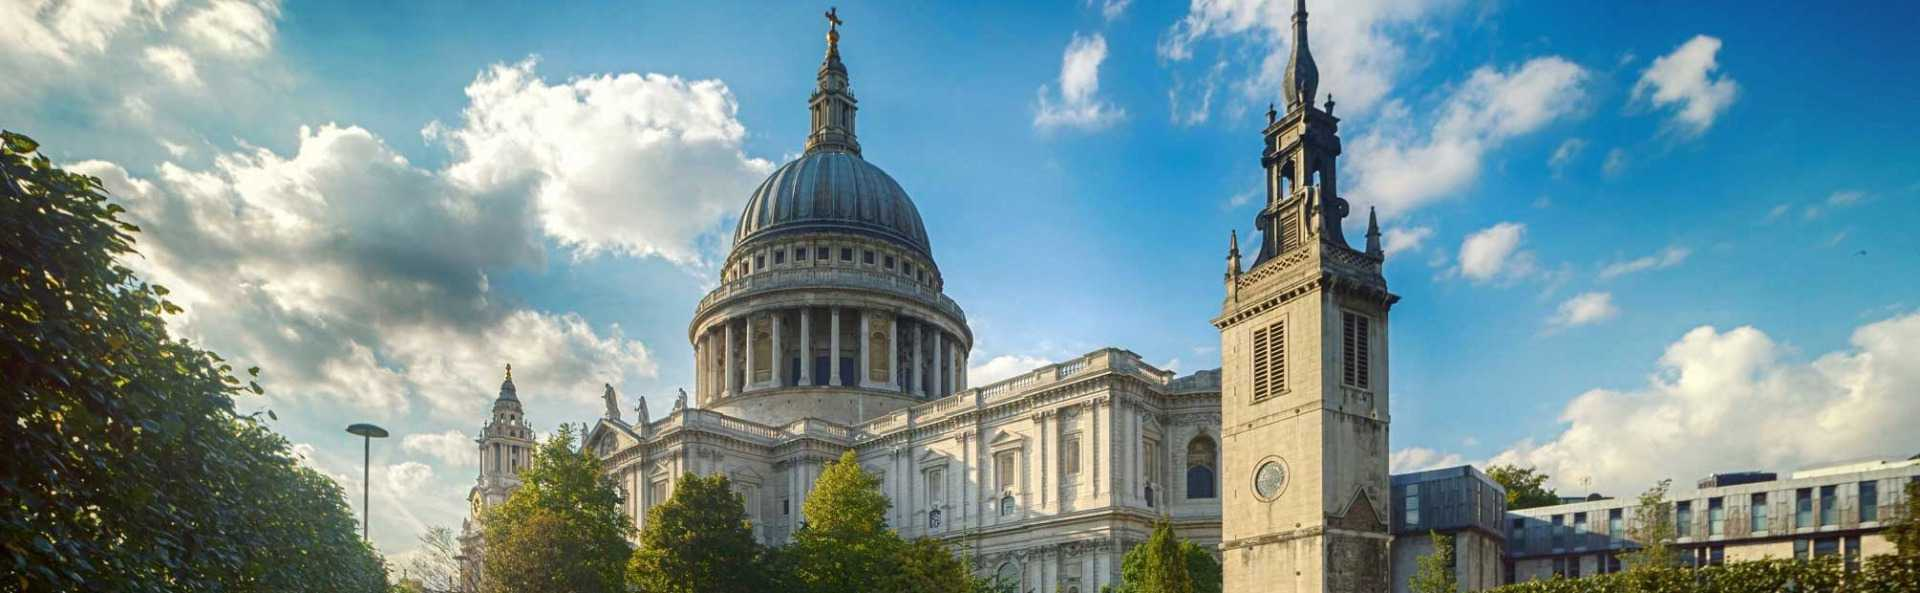 St Pauls Cathedral Outside View